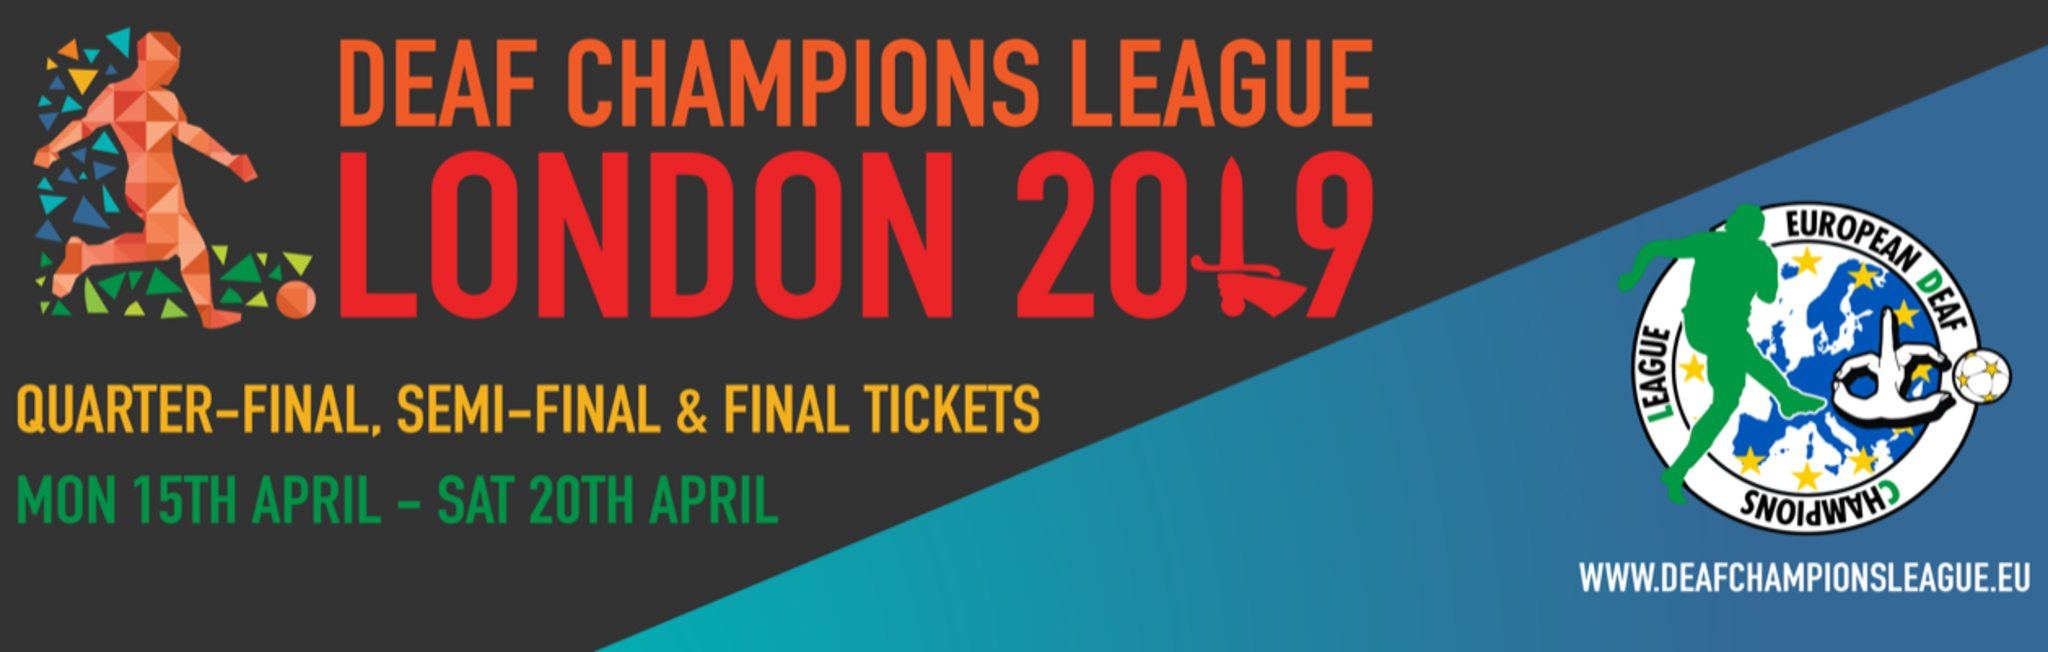 DCL Football 2019 OC has launched match ticket, Buy Now!